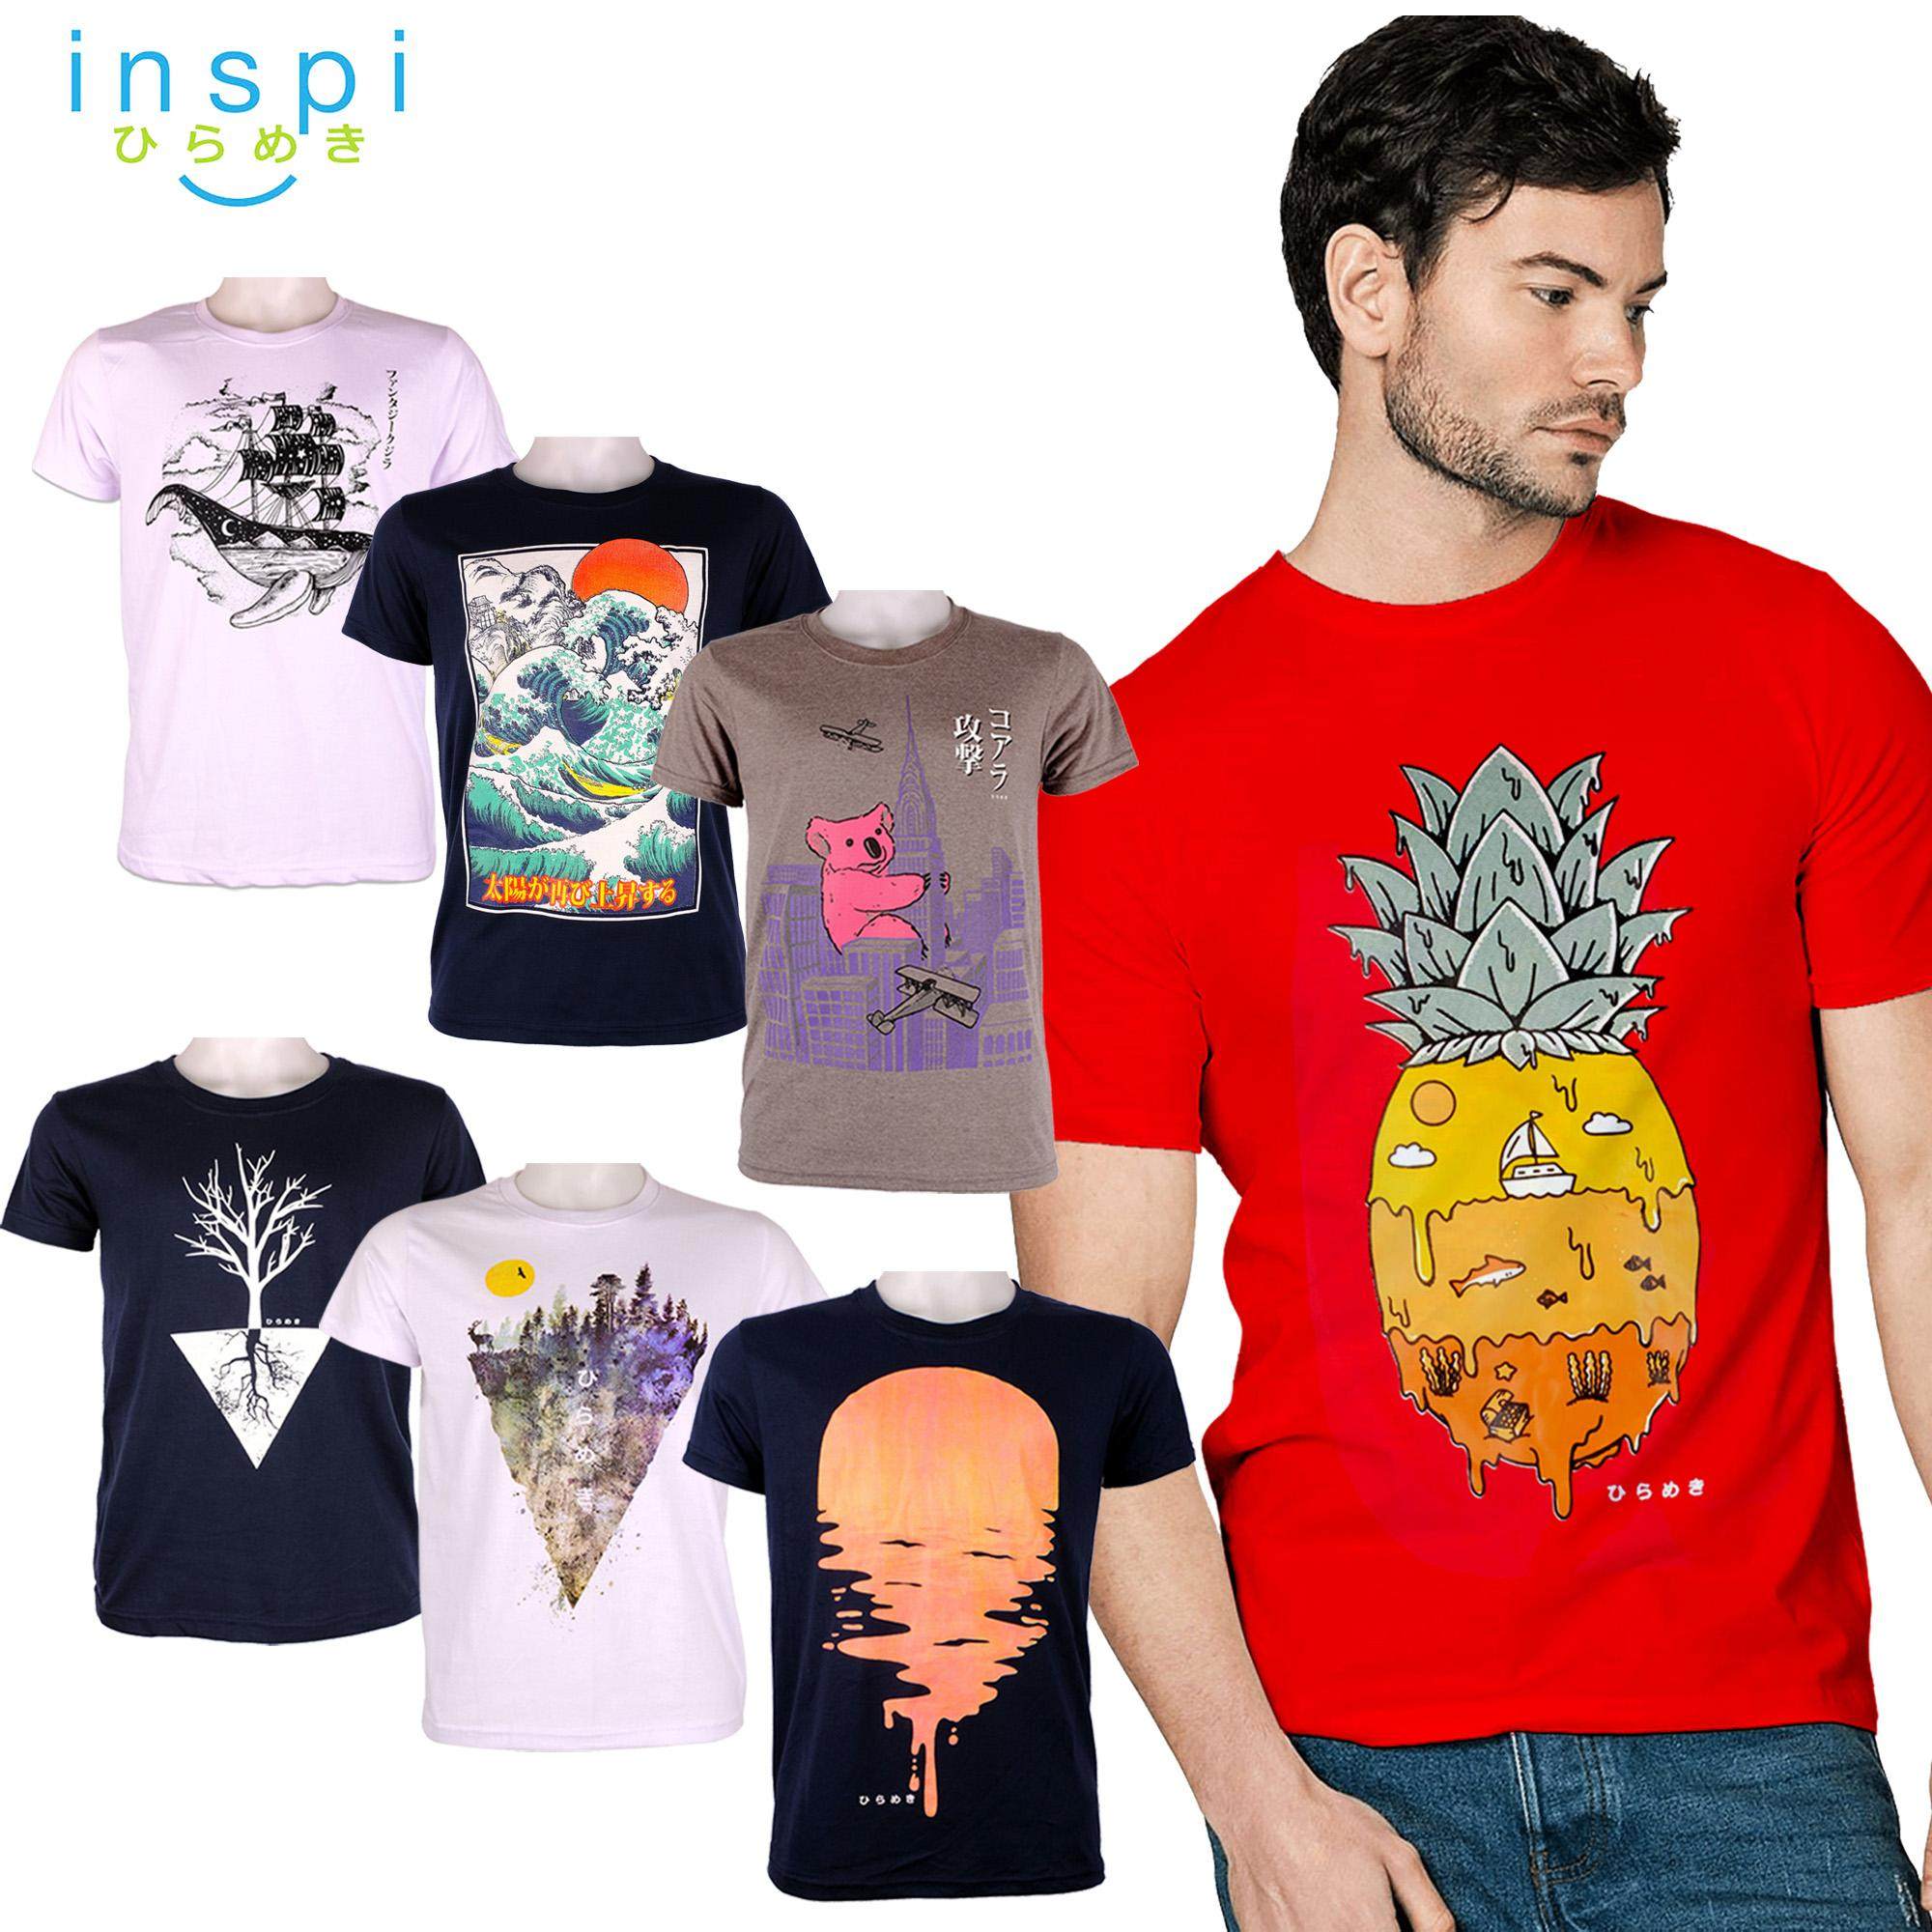 f3b1eb7ca9 INSPI Tees Nature Collection tshirt printed graphic tee Mens t shirt shirts  for men tshirts sale